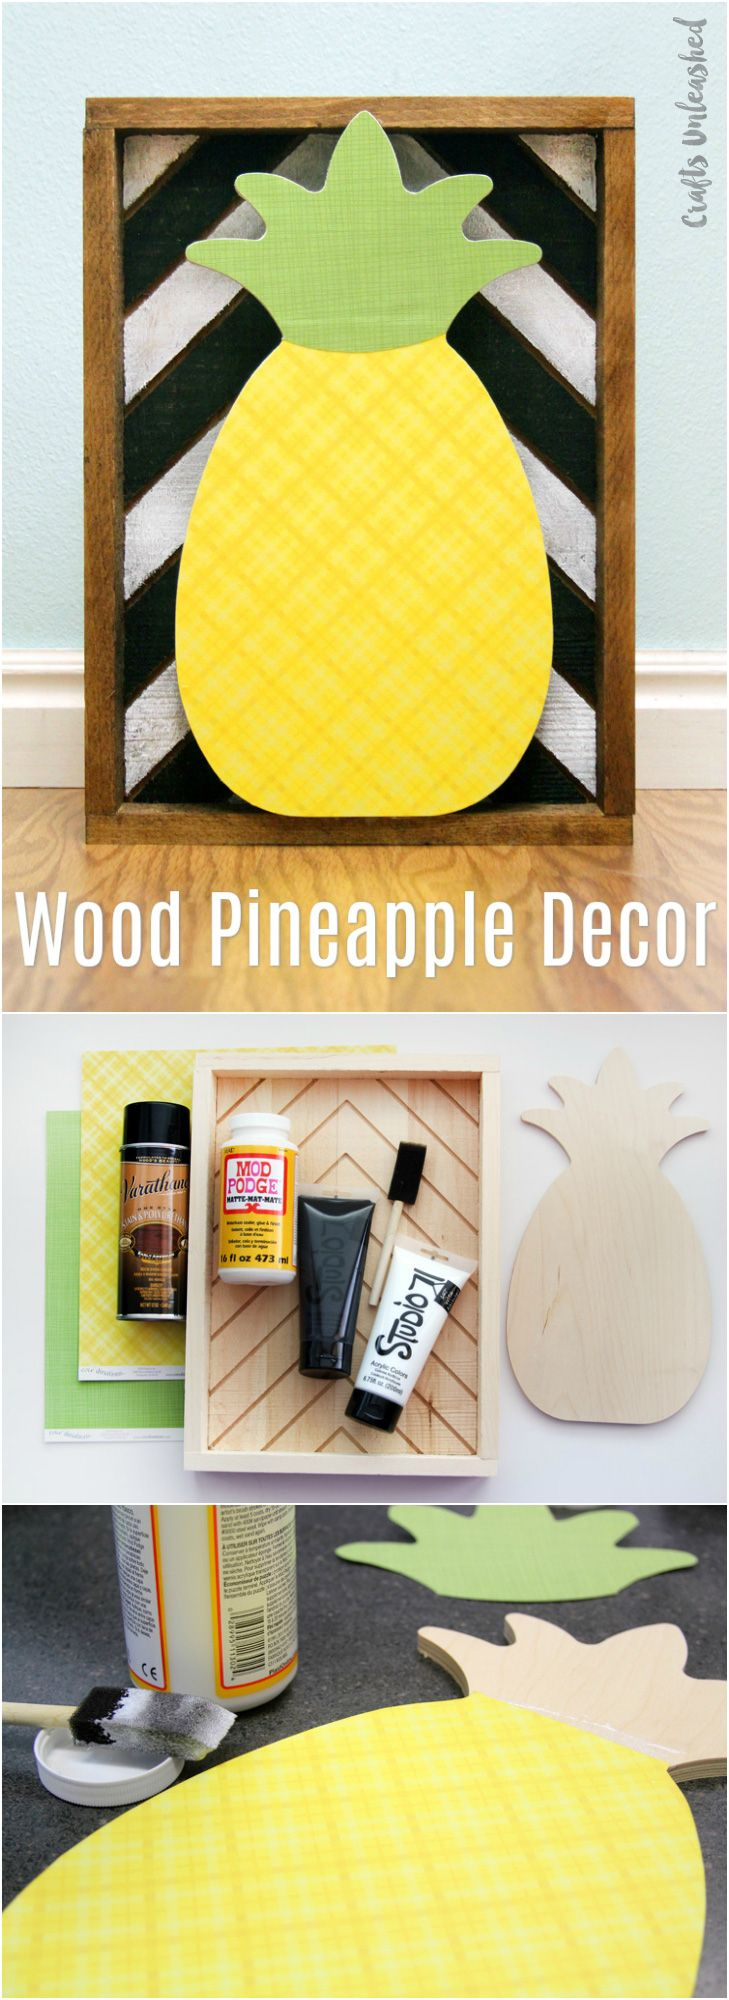 260 best Home Decor images on Pinterest | Bag, Craft rooms and Craft ...